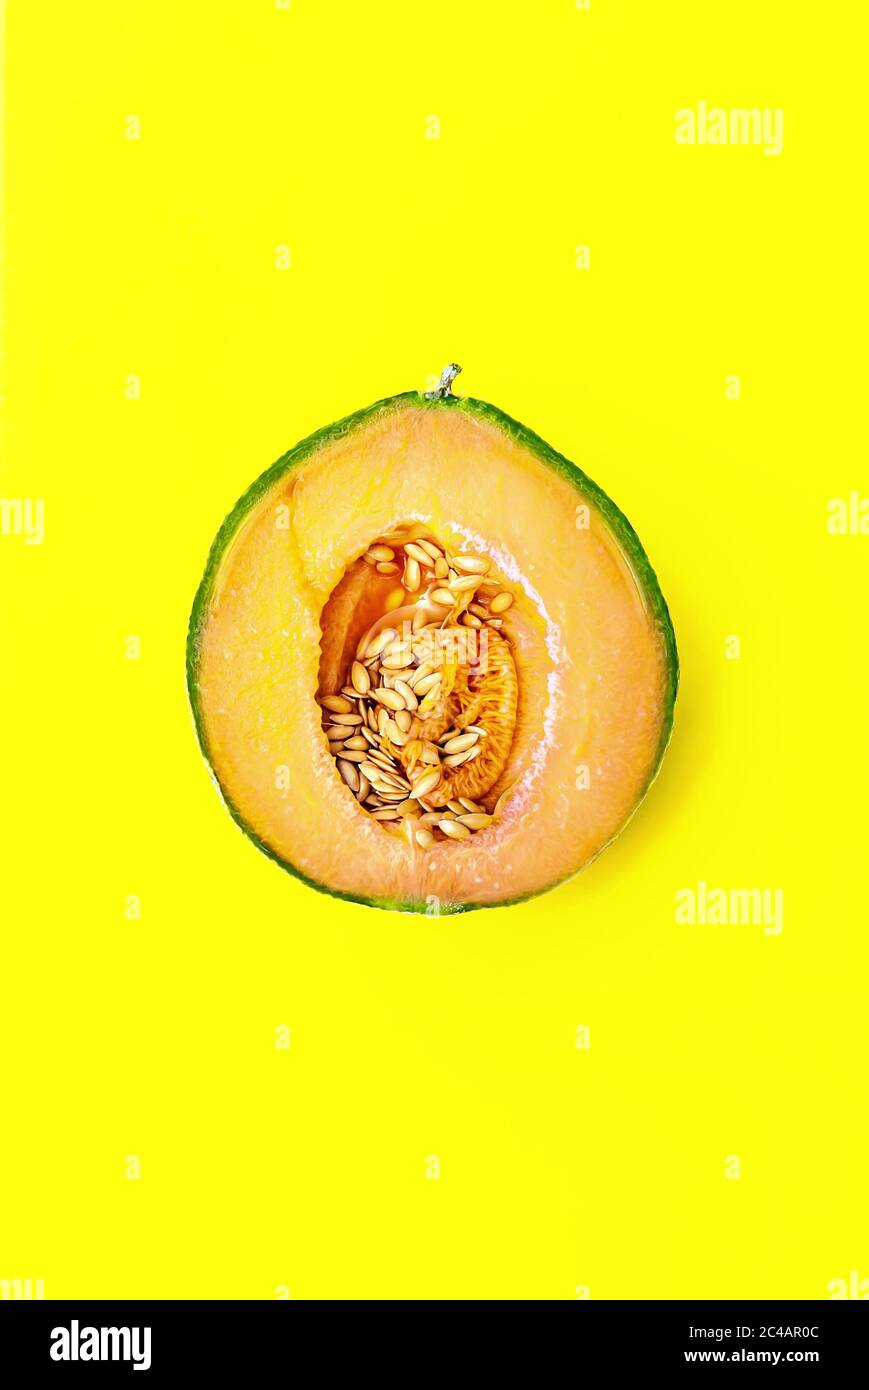 Honey Melon Or Cantaloupe Cucumis Melo One Half Of Japanese Melon On Yellow Background Summertime Fruits Healthy Eating Concept Top View Stock Photo Alamy At first the health benefits of cantaloupe may not seem as many as with other fruits. alamy